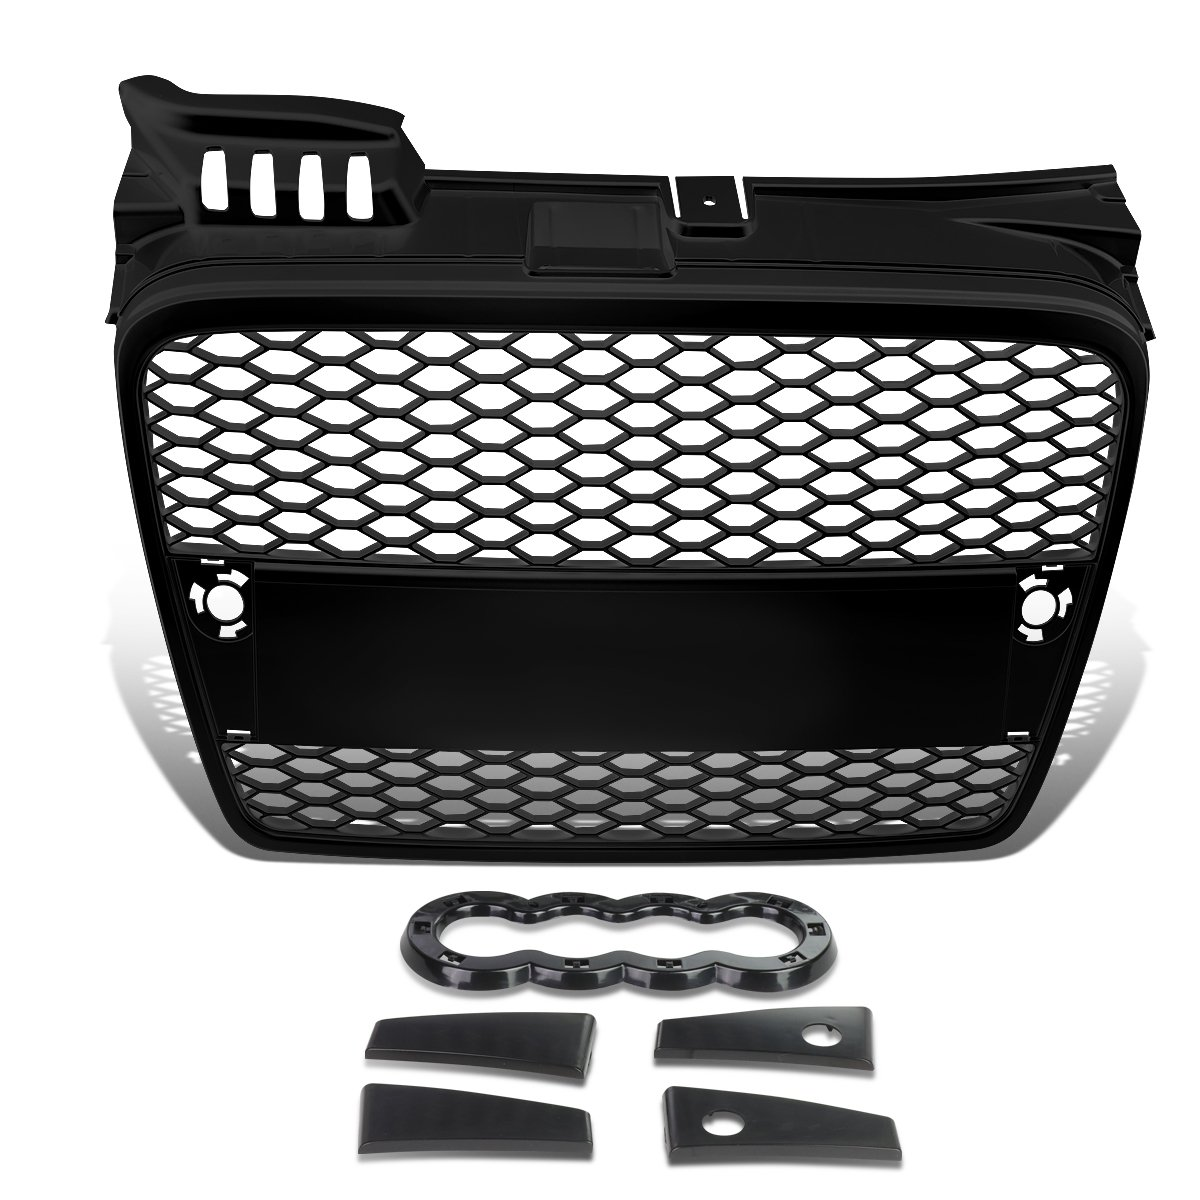 For Audi A4 Quattro ABS Plastic Honeycomb Mesh Style Front Grille (Black) - B7 Typ 8E/8H Auto Dynasty GR-A4-0507-RS-BK